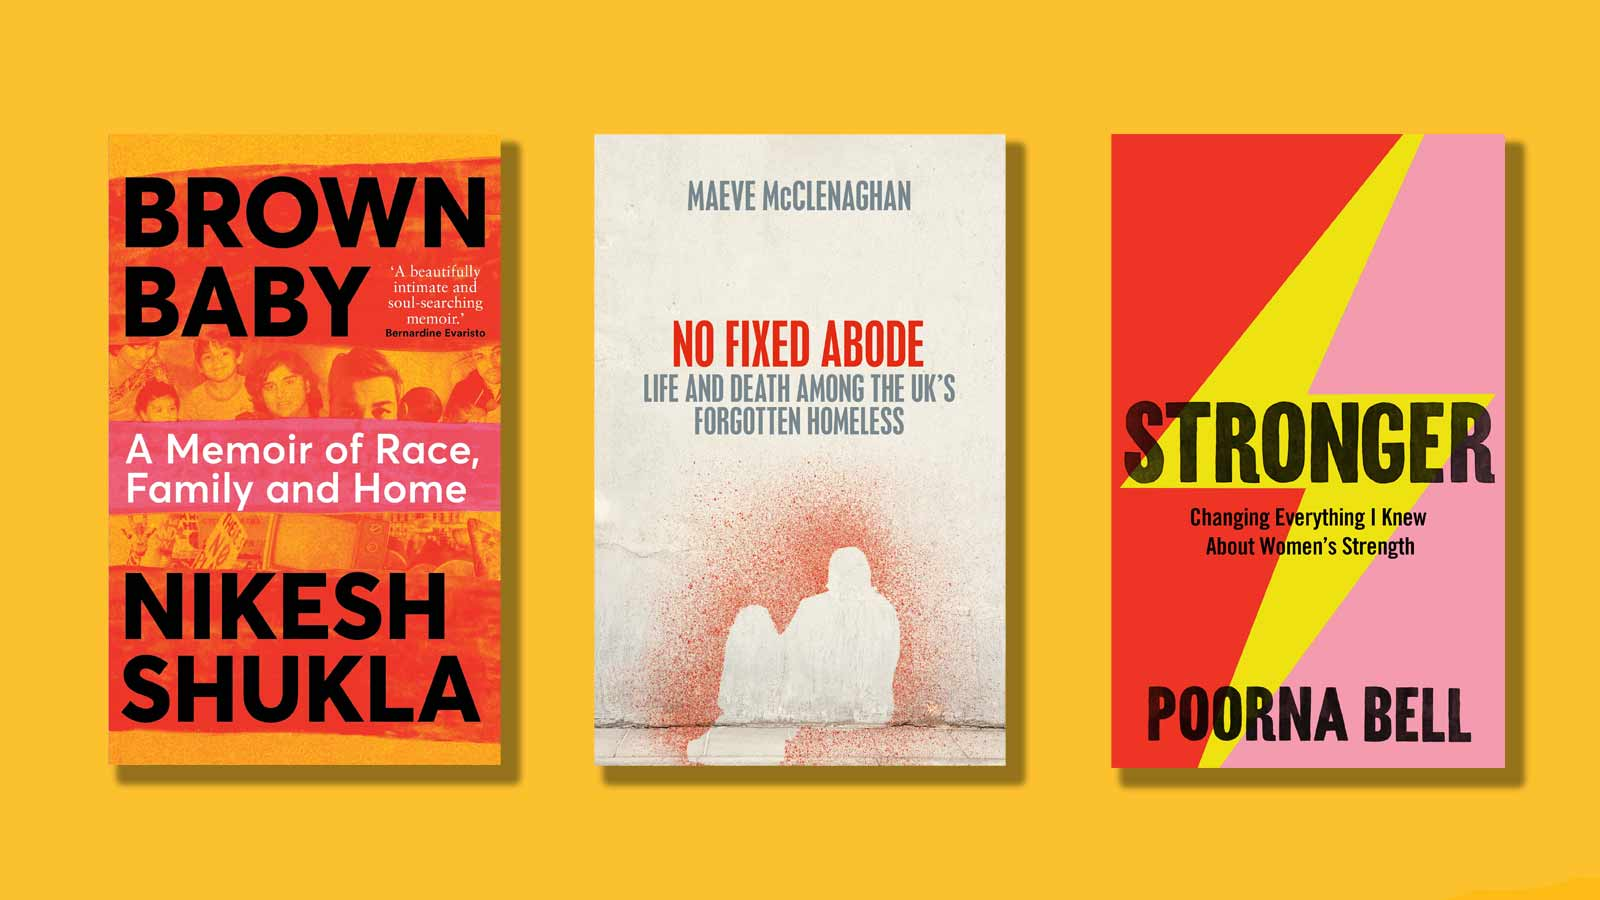 Brown Baby, No Fixed Abode and Stronger book covers